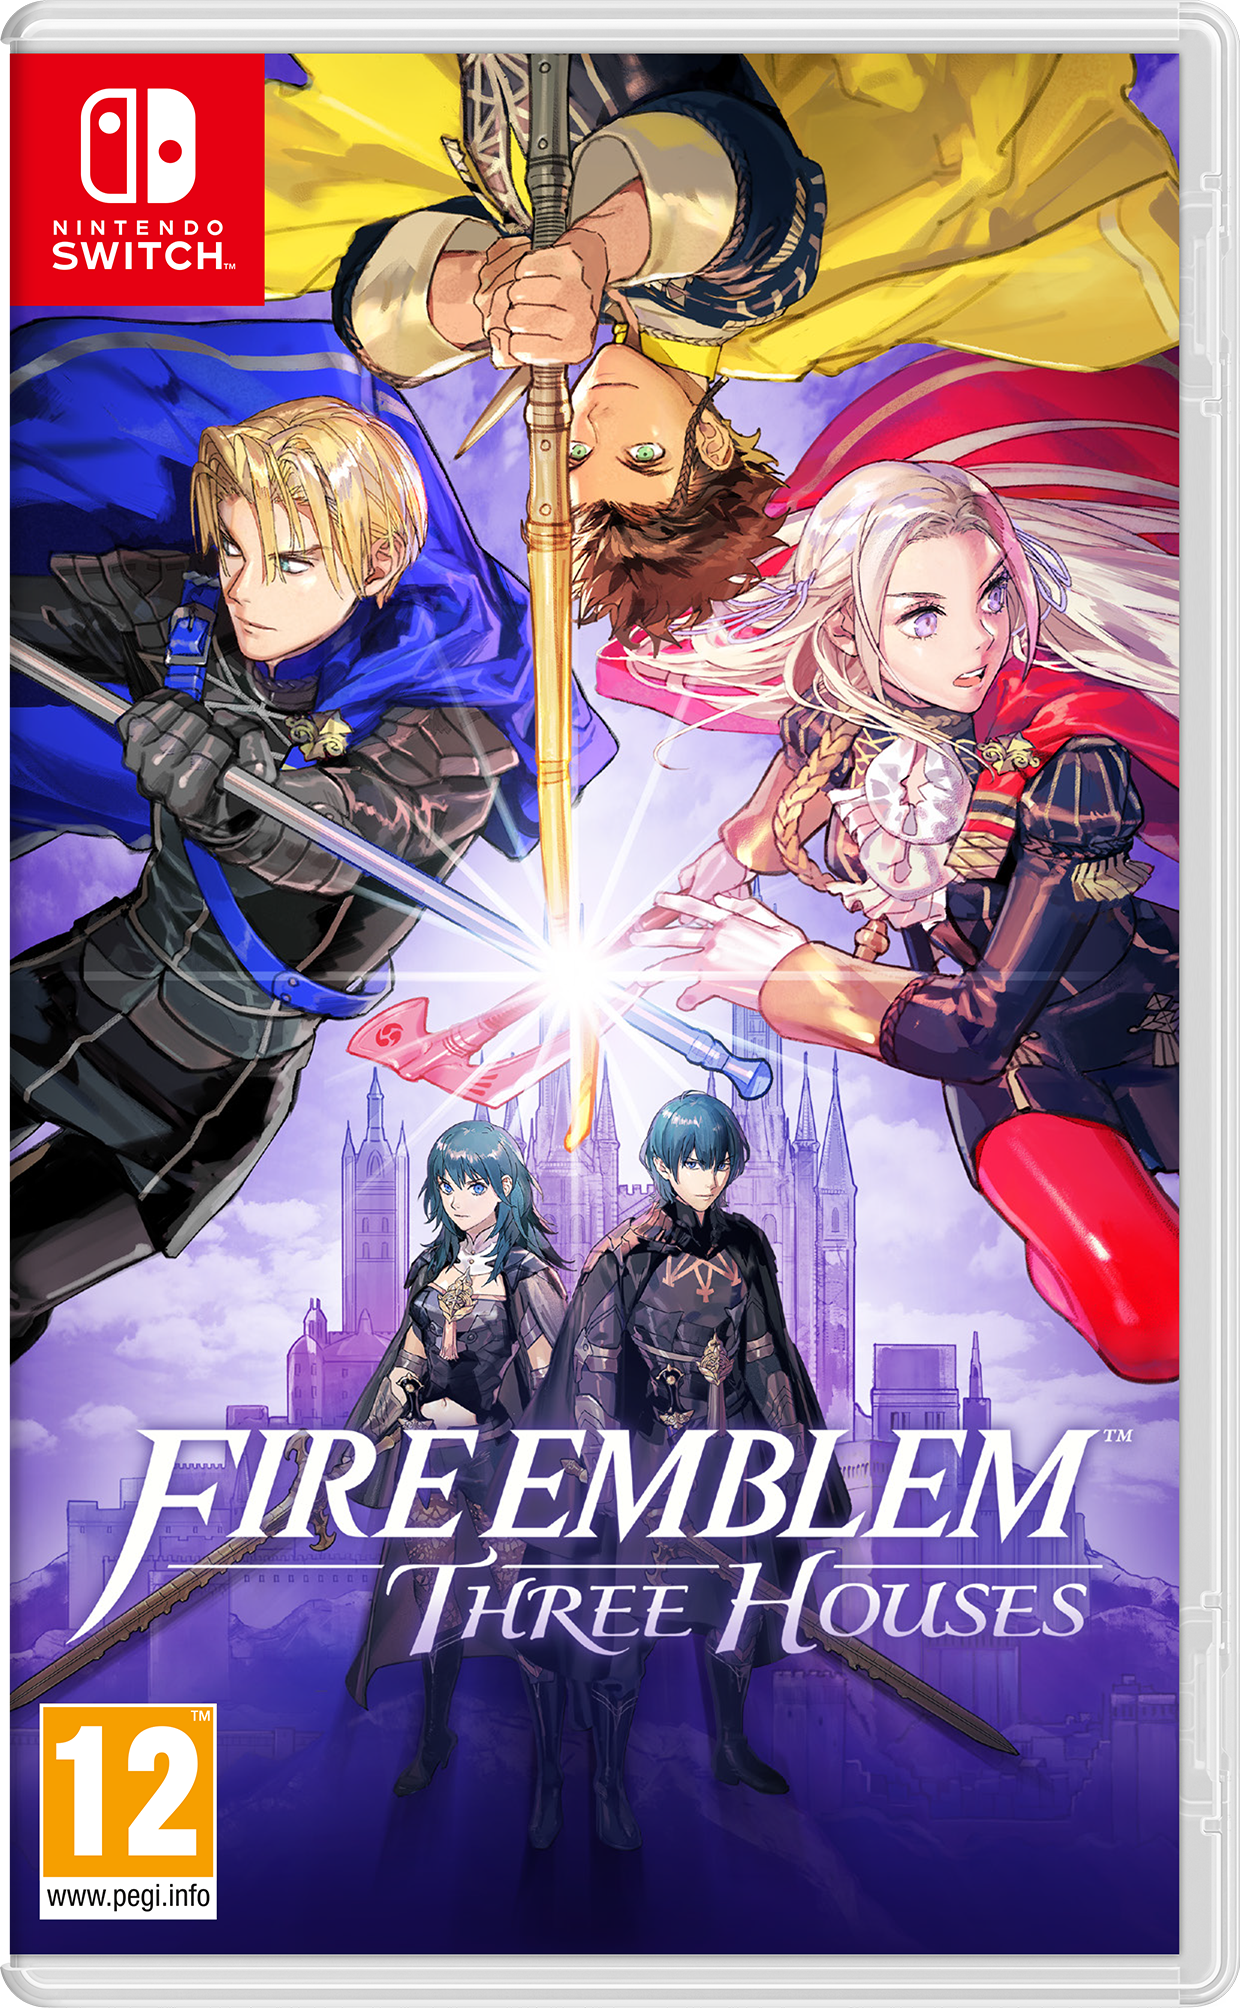 Fire Emblem: Three Houses | Fire Emblem Wiki | FANDOM